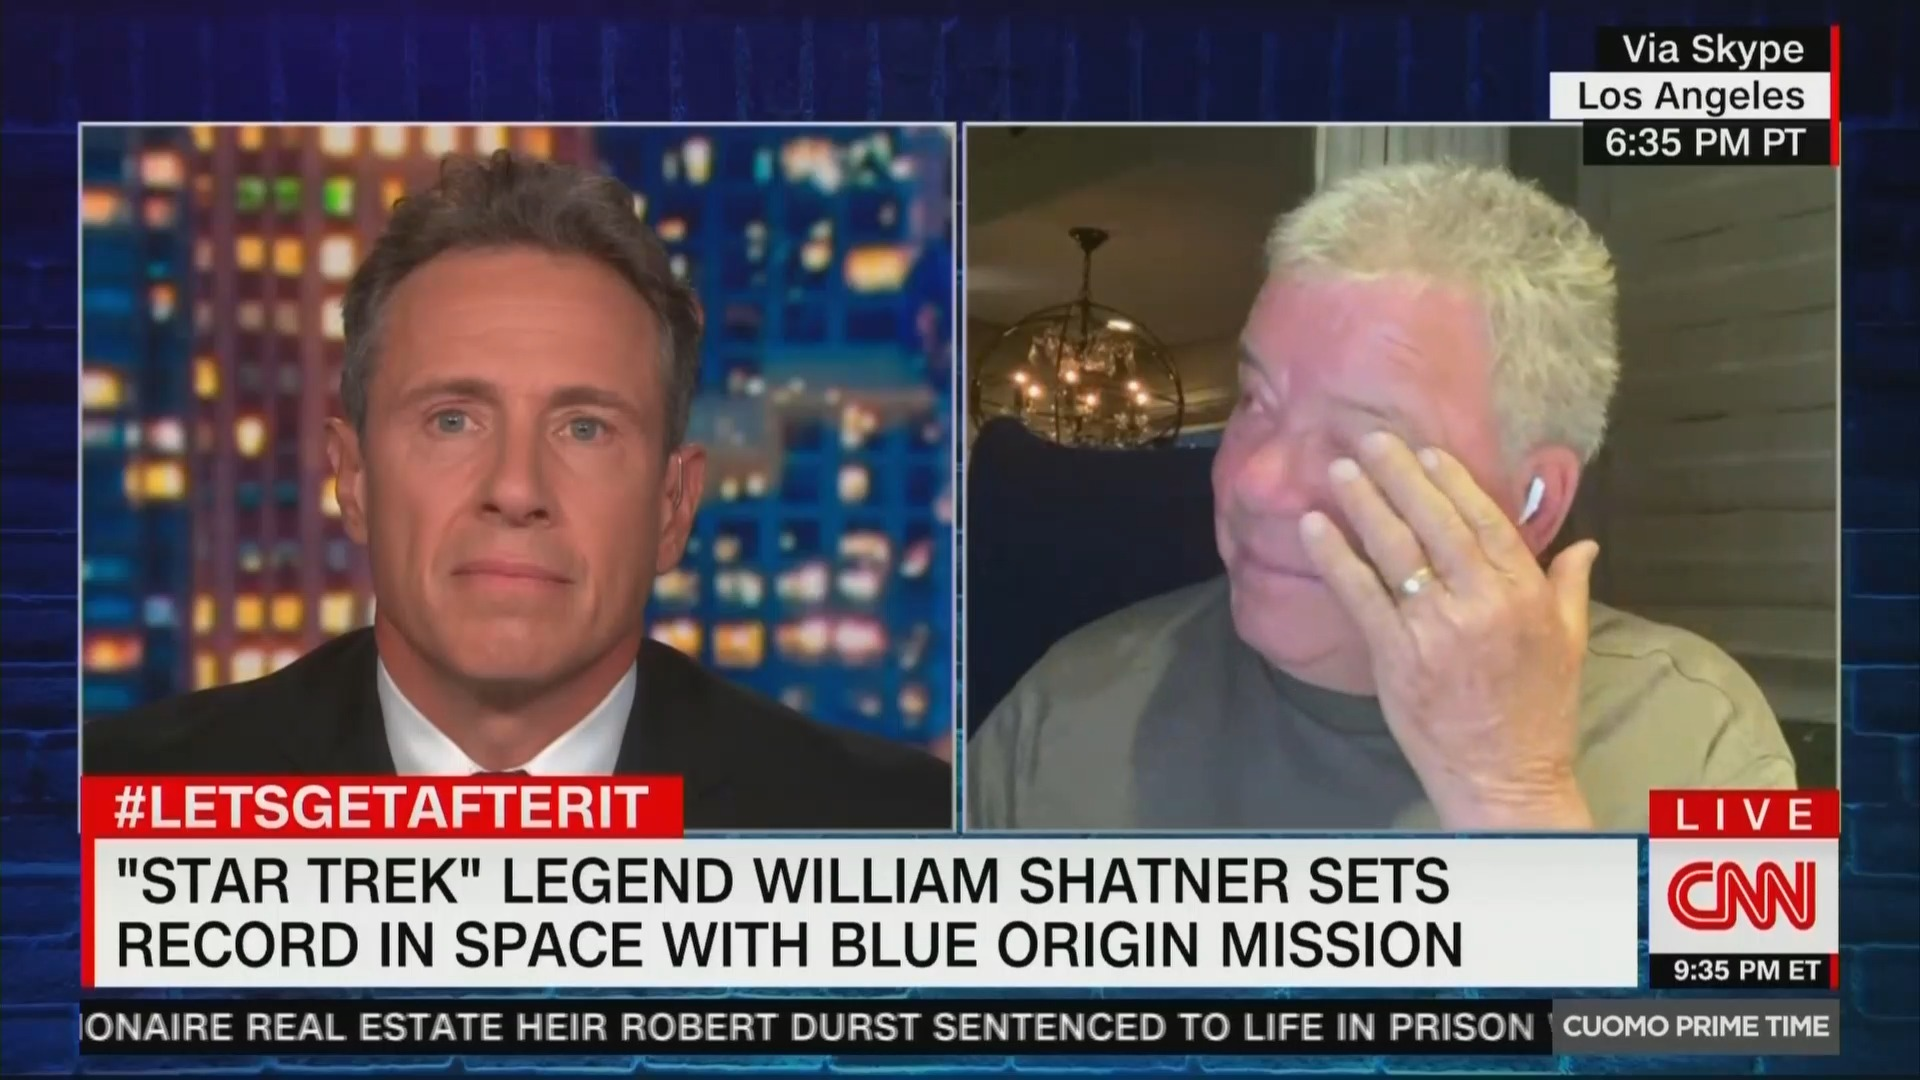 William Shatner issues dire warning following space flight: 'Destruction of the planet is suicide'